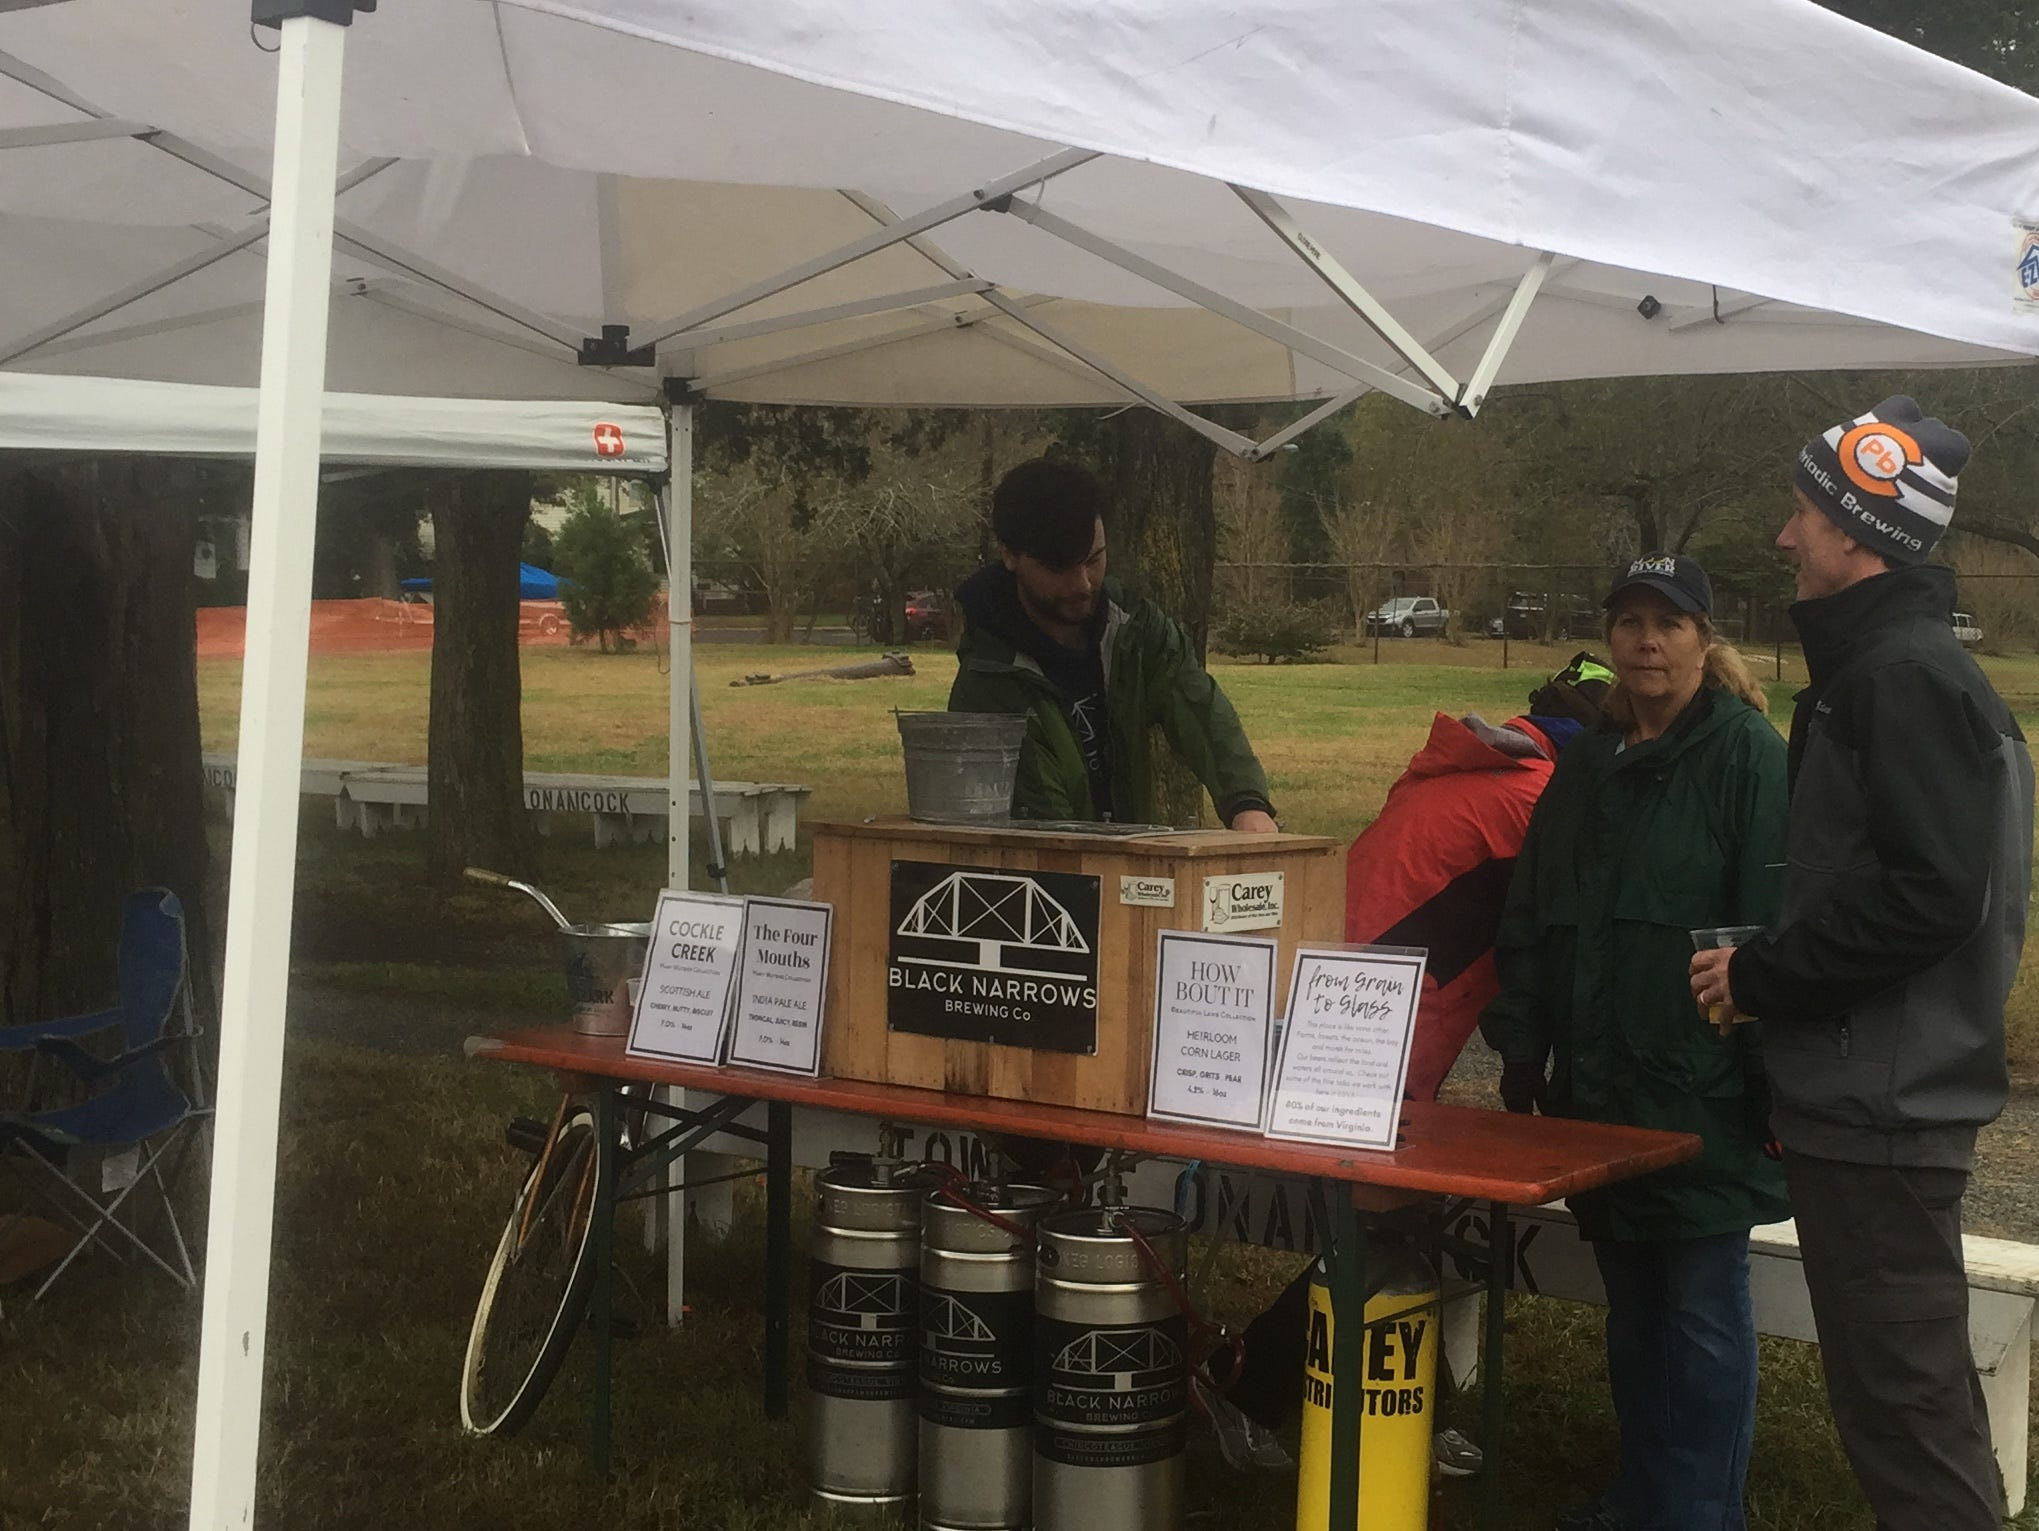 The crew from Black Narrows Brewing Co. had a booth at the Bike & Brew event at the Historic Onancock School on Saturday, Oct. 27, 2018. The event, held following the CBES Bike Ride, highlighted the Eastern Shore of Virginia's two breweries, Black Narrows Brewing Co. and Cape Charles Brewing Co.